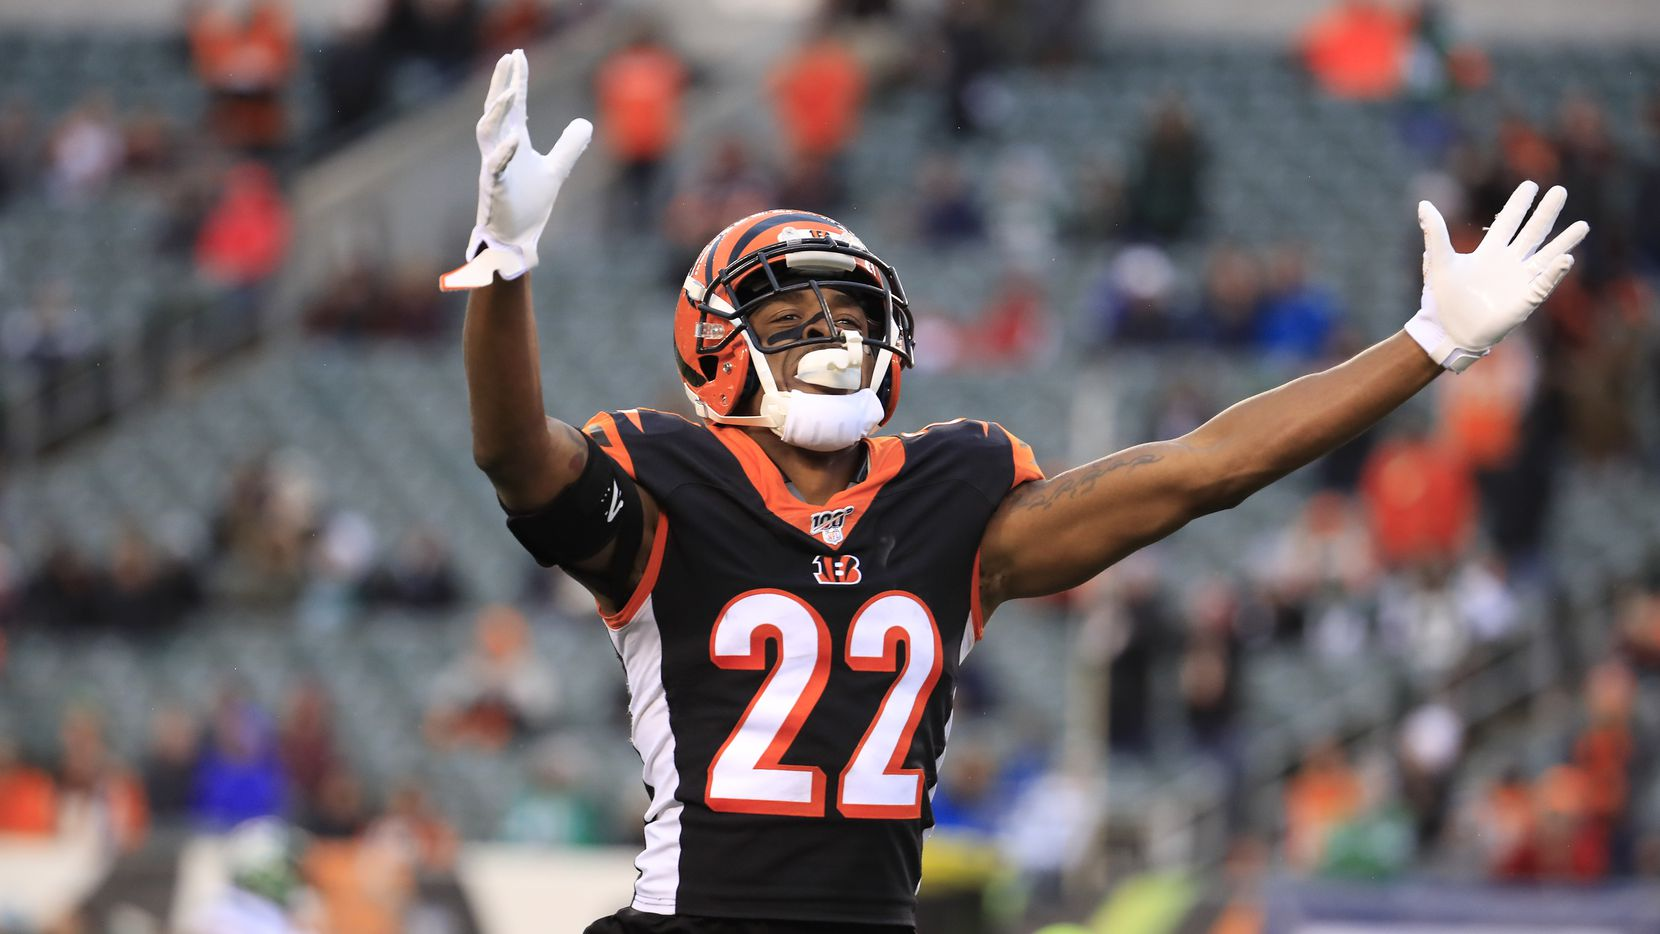 CINCINNATI, OHIO - DEC. 1: William Jackson III #22 of the Cincinnati Bengals celebrates after the Bengals stopped the the New York Jets on fourth down in the final minutes of the game at Paul Brown Stadium on Dec. 1, 2019, in Cincinnati, Ohio.